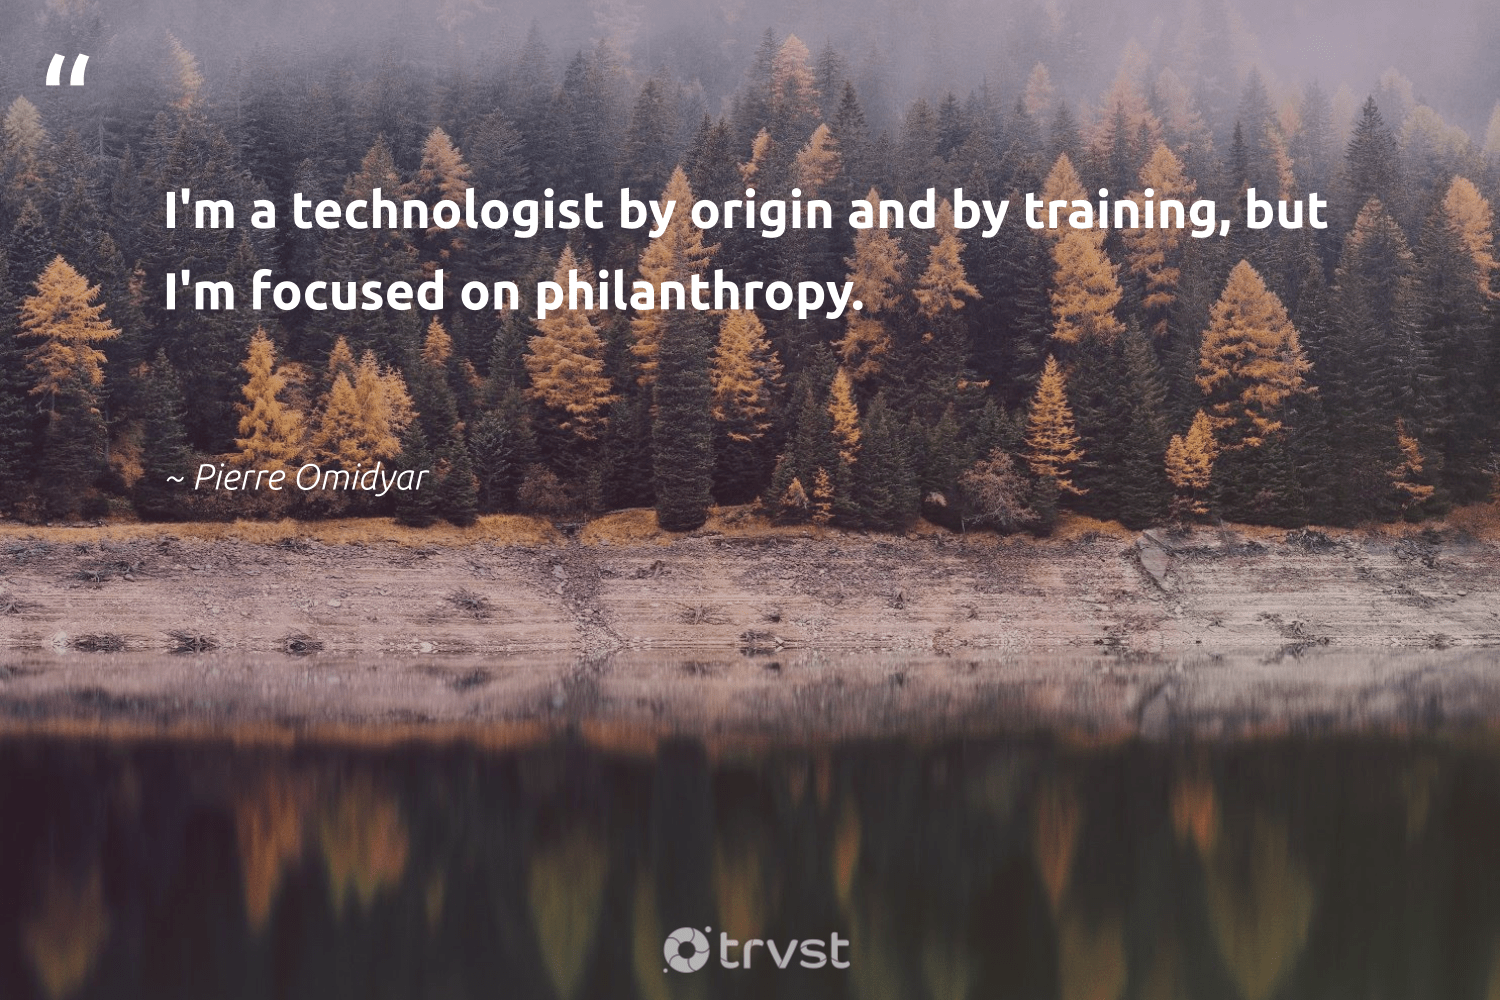 """I'm a technologist by origin and by training, but I'm focused on philanthropy.""  - Pierre Omidyar #trvst #quotes #philanthropy #philanthropic #changemakers #giveforthefuture #impact #togetherwecan #itscooltobekind #beinspired #ecoconscious #bethechange"